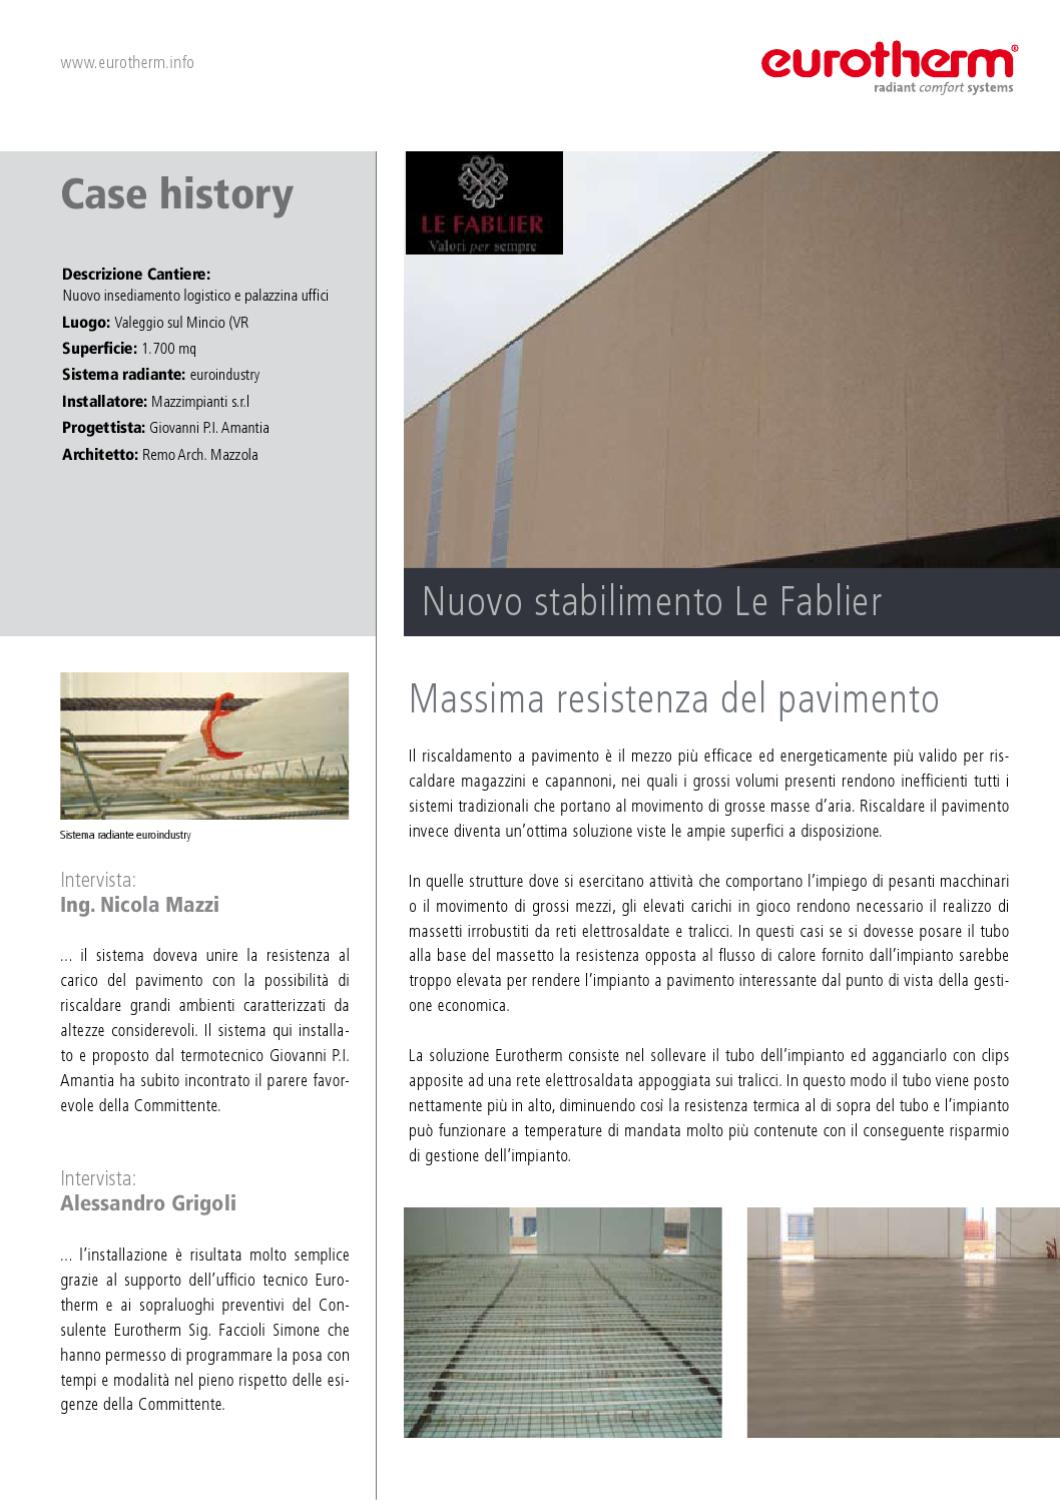 Come Riscaldare Ambienti Grandi case history by eurotherm s.p.a. - issuu